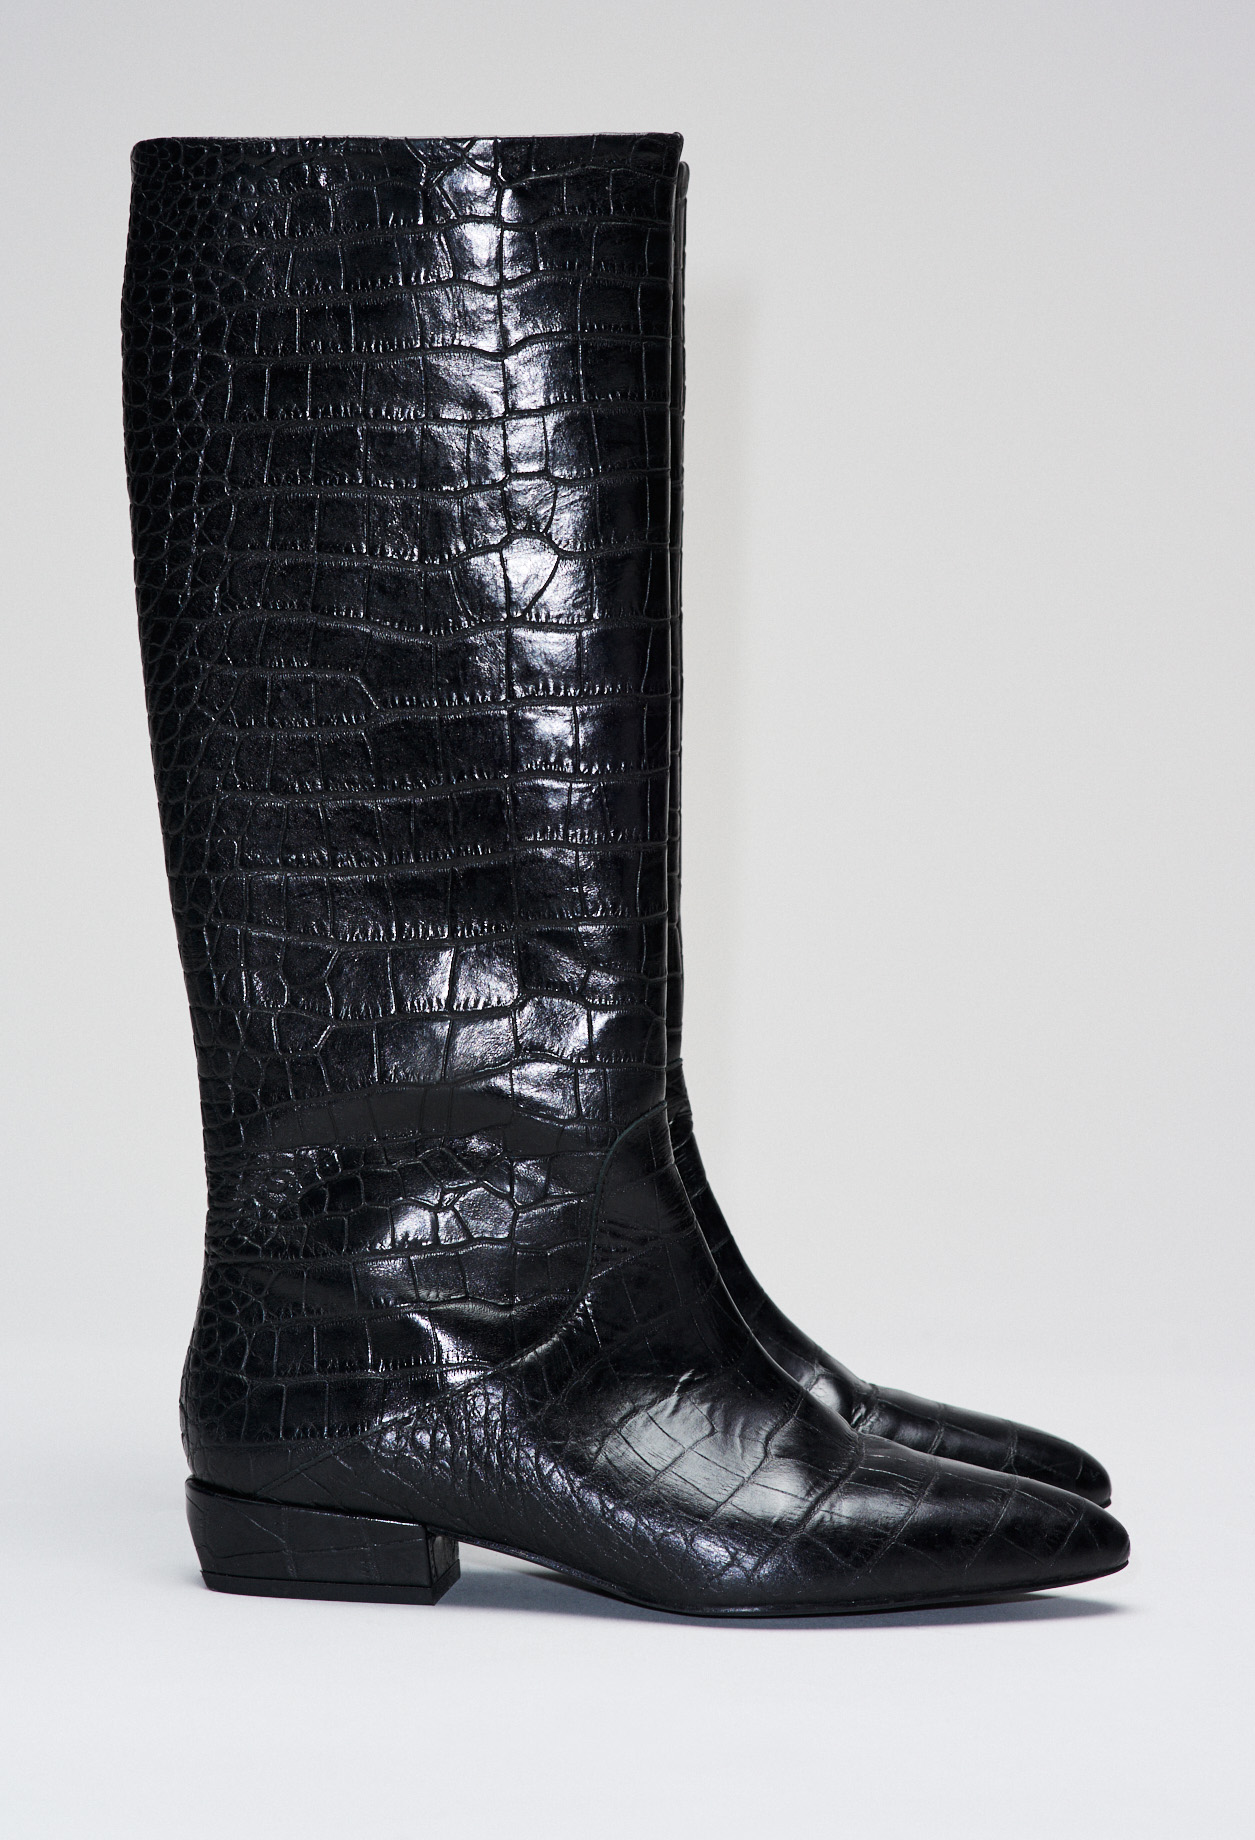 Croco patterned leather boots